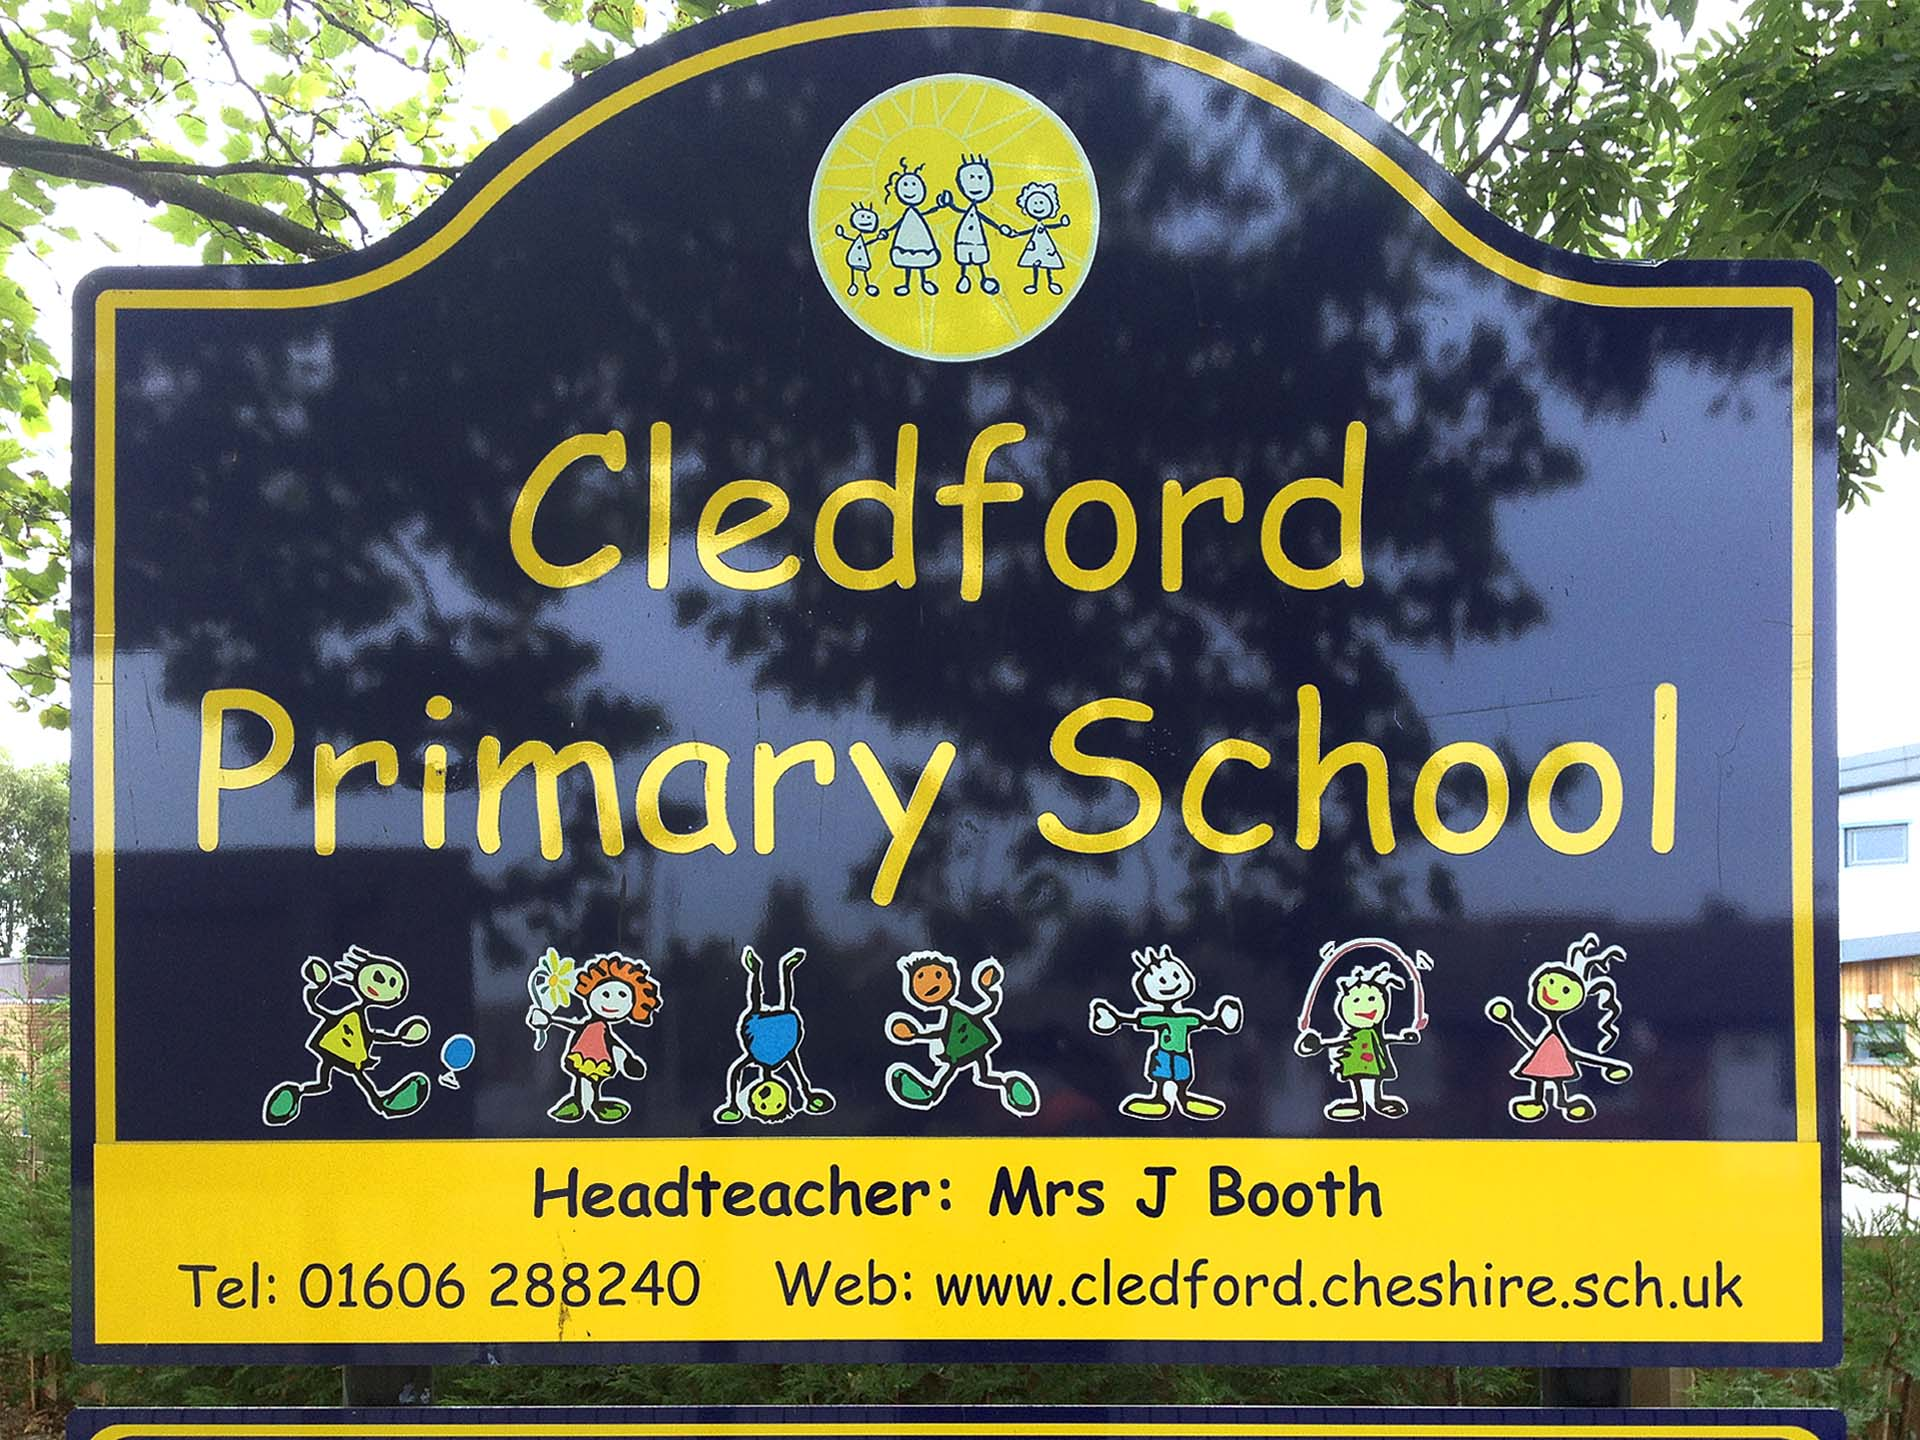 Commercial - Cledford School